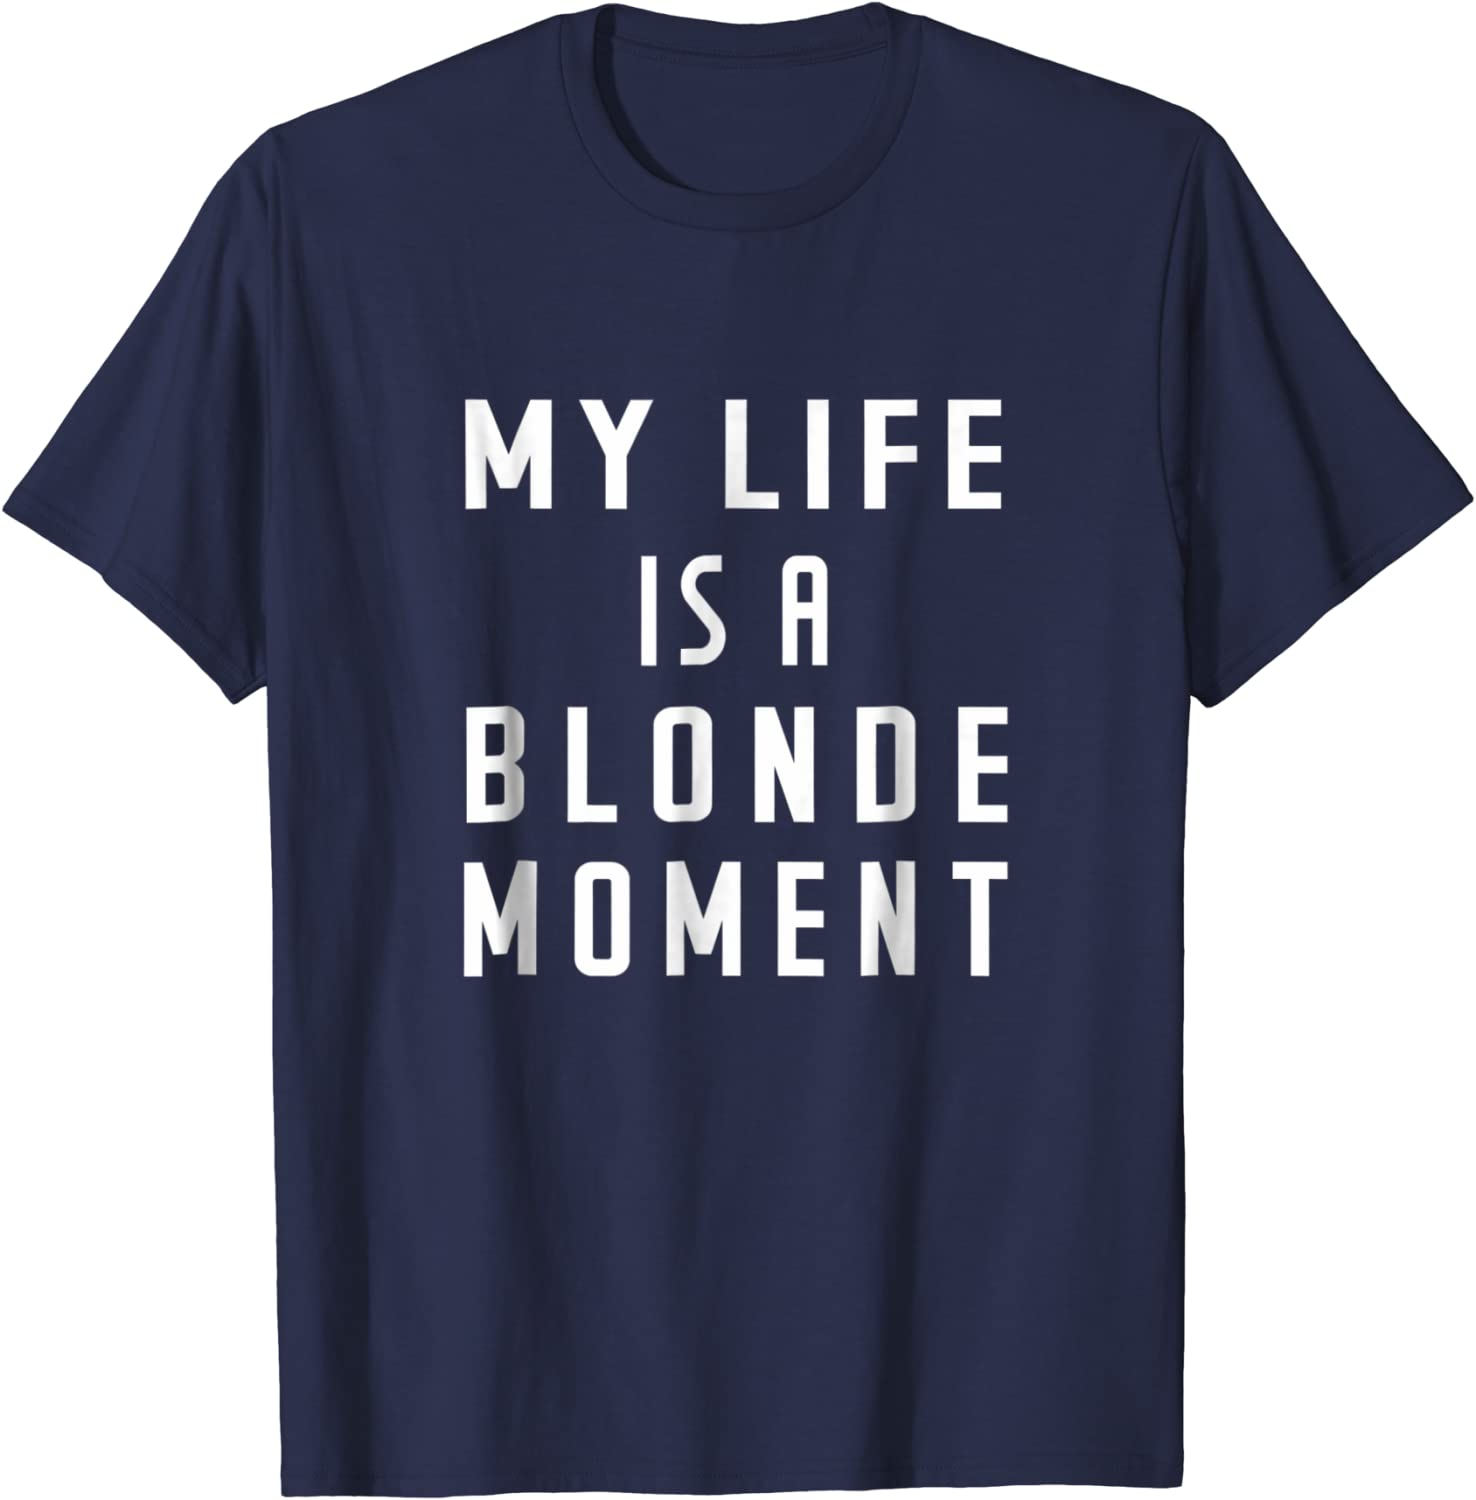 My life is a blonde moment Funny Shirts Blonde Shirt Gifts for Best Friends Shirts Mom Gift Unisex Tumblr Crew neck T-Shirt Tops Clothing